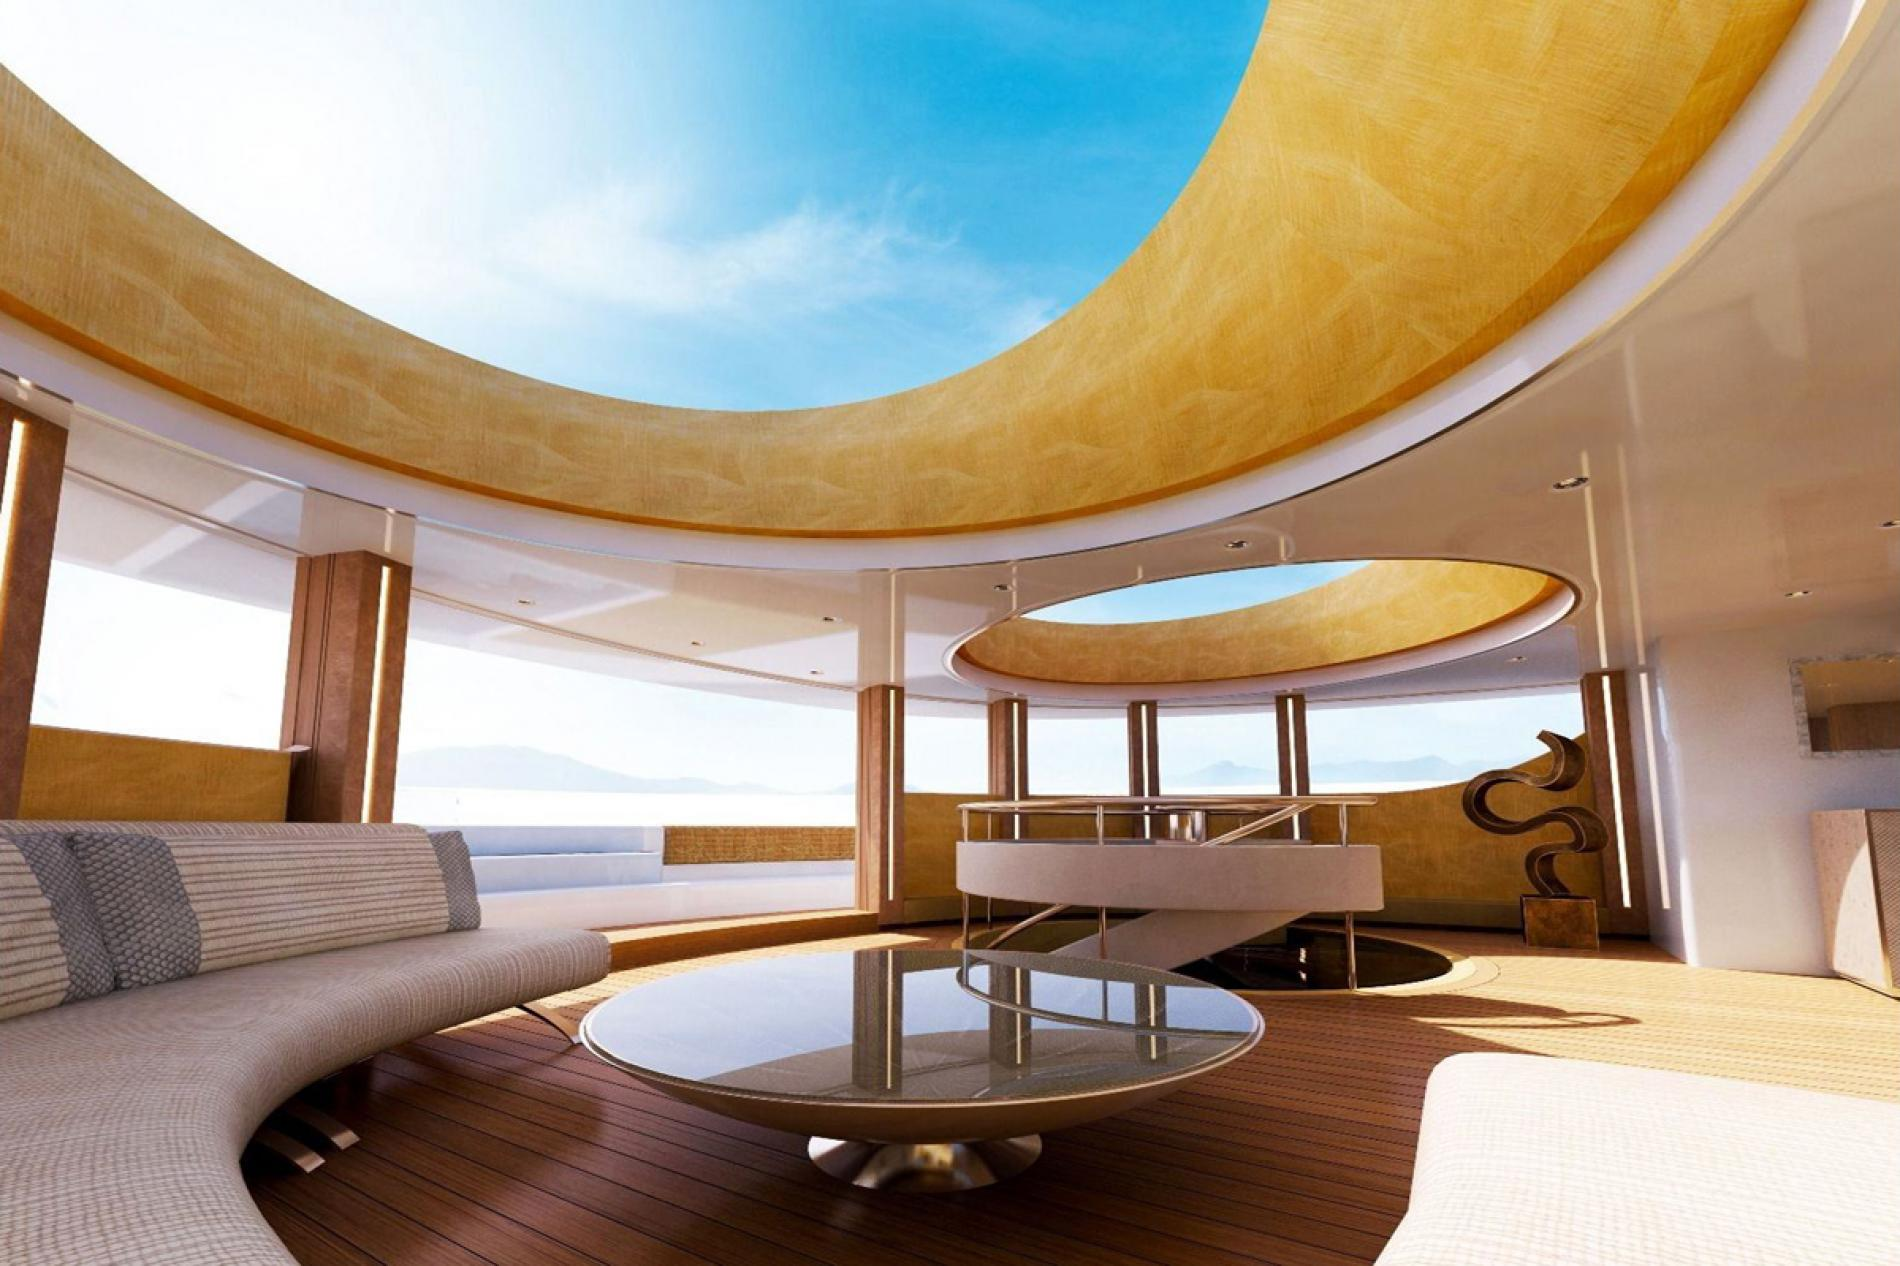 ILLUSION PLUS - Luxury Motor Yacht For Sale - Exterior Design - Img 1 | C&N